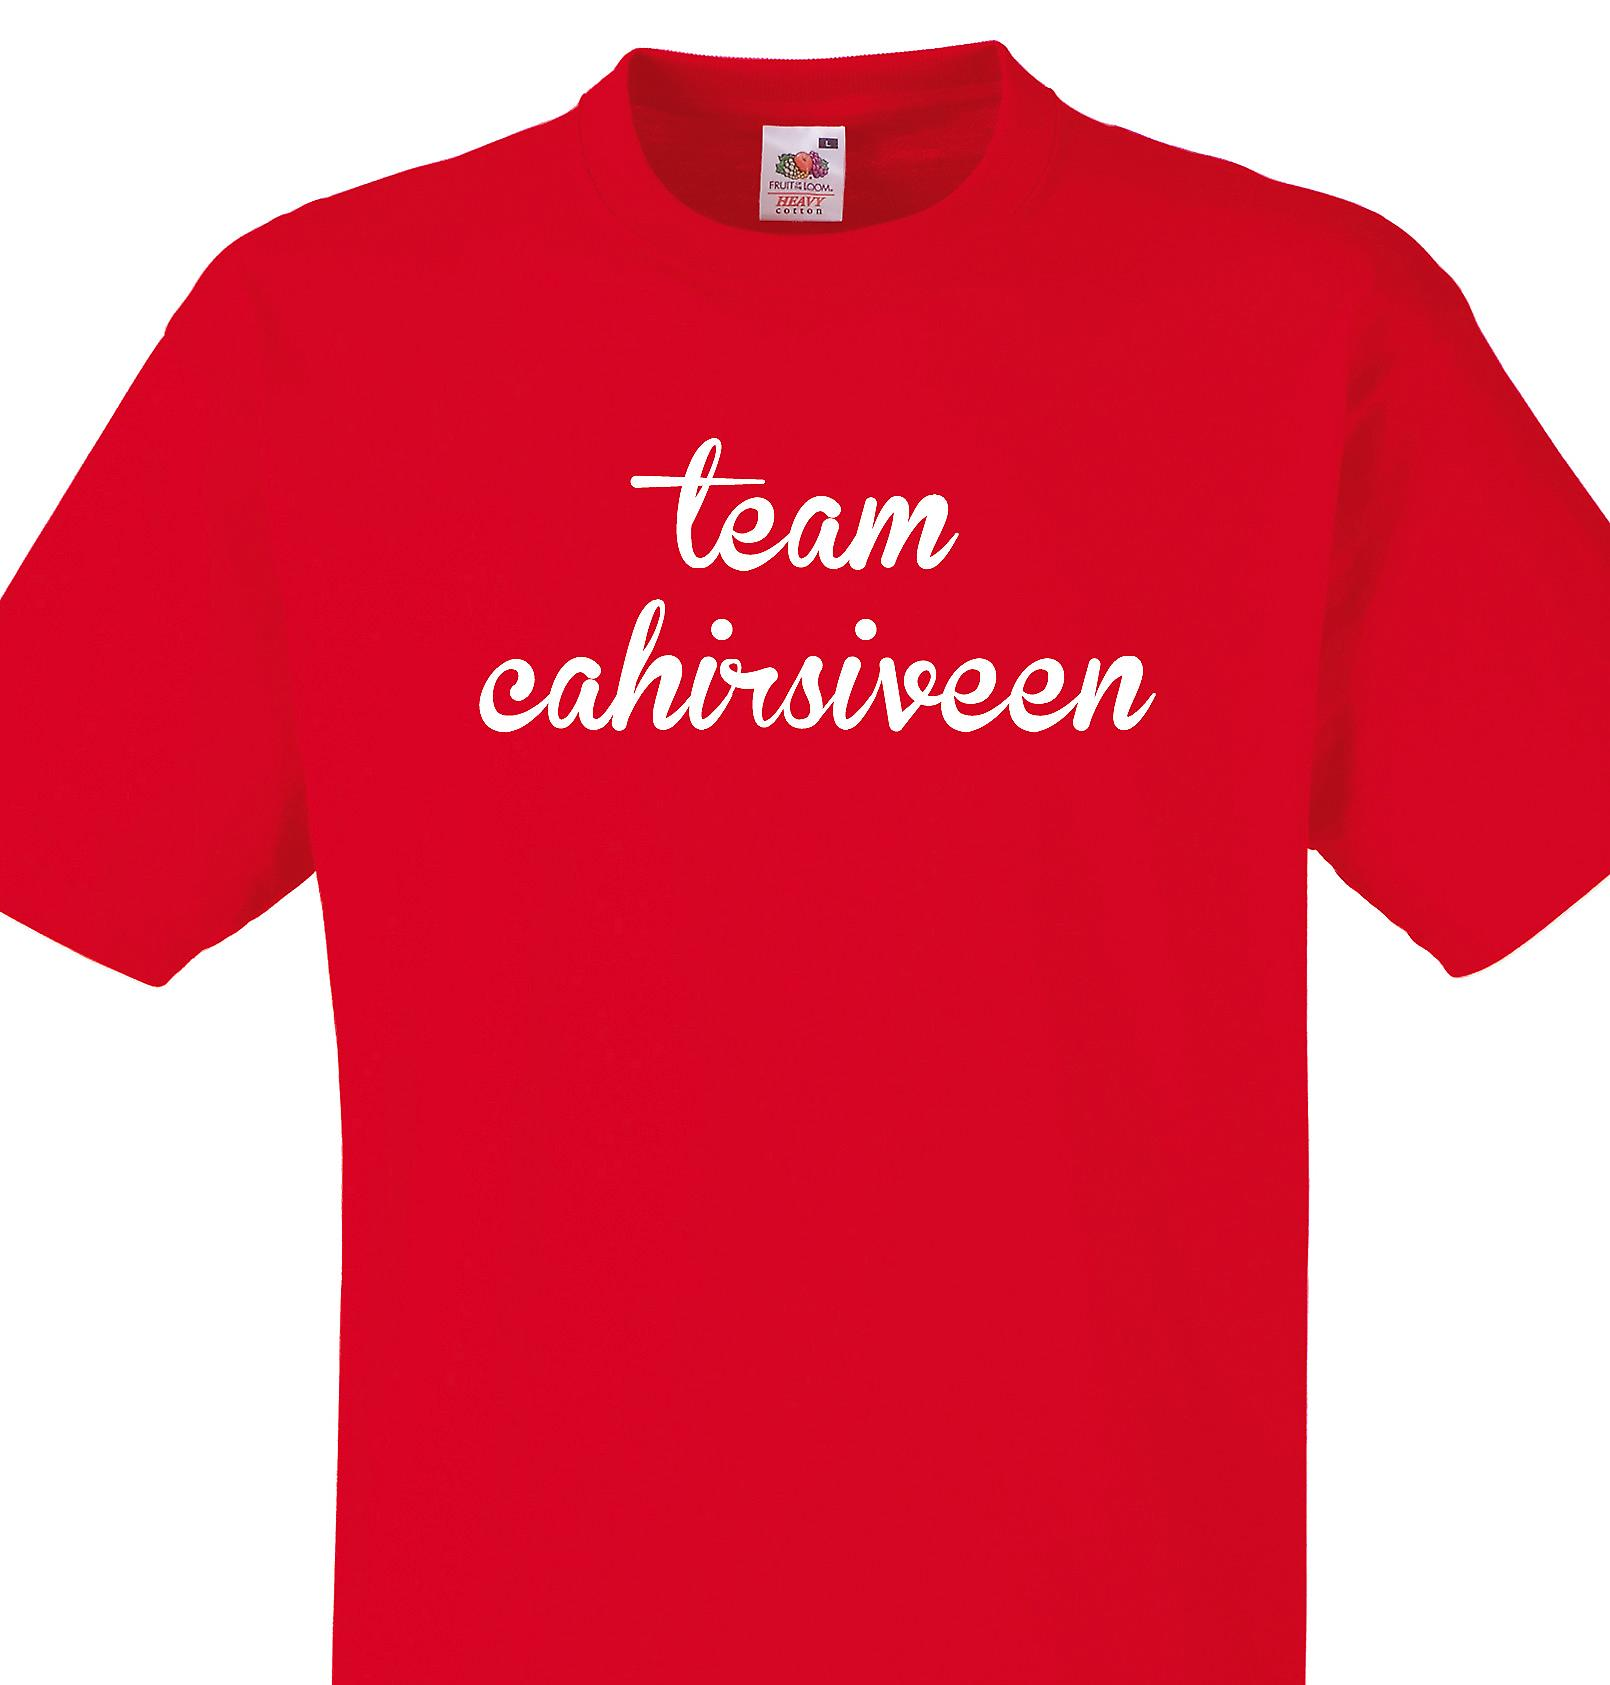 Team Cahirsiveen Red T shirt